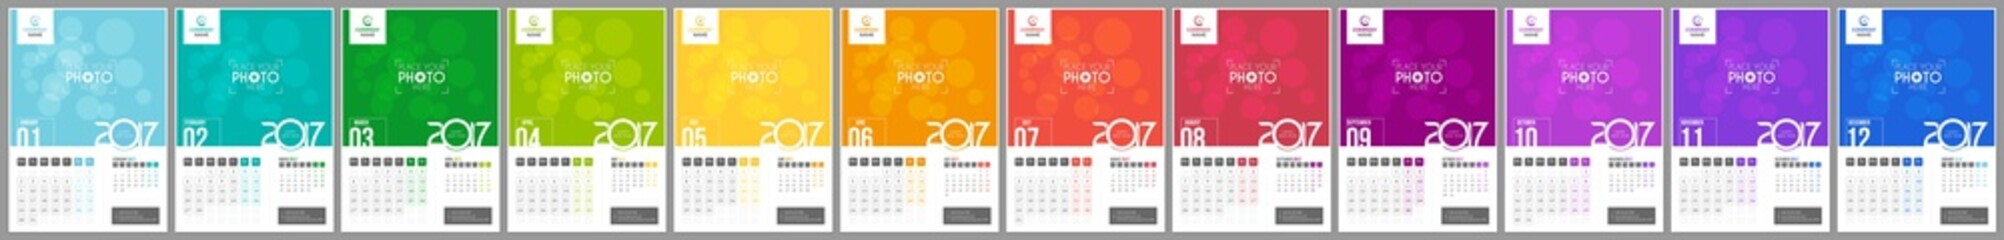 Wall Calendar 2017. Weeks Start Monday. 12 Months. Vector Template with Place for Photo.